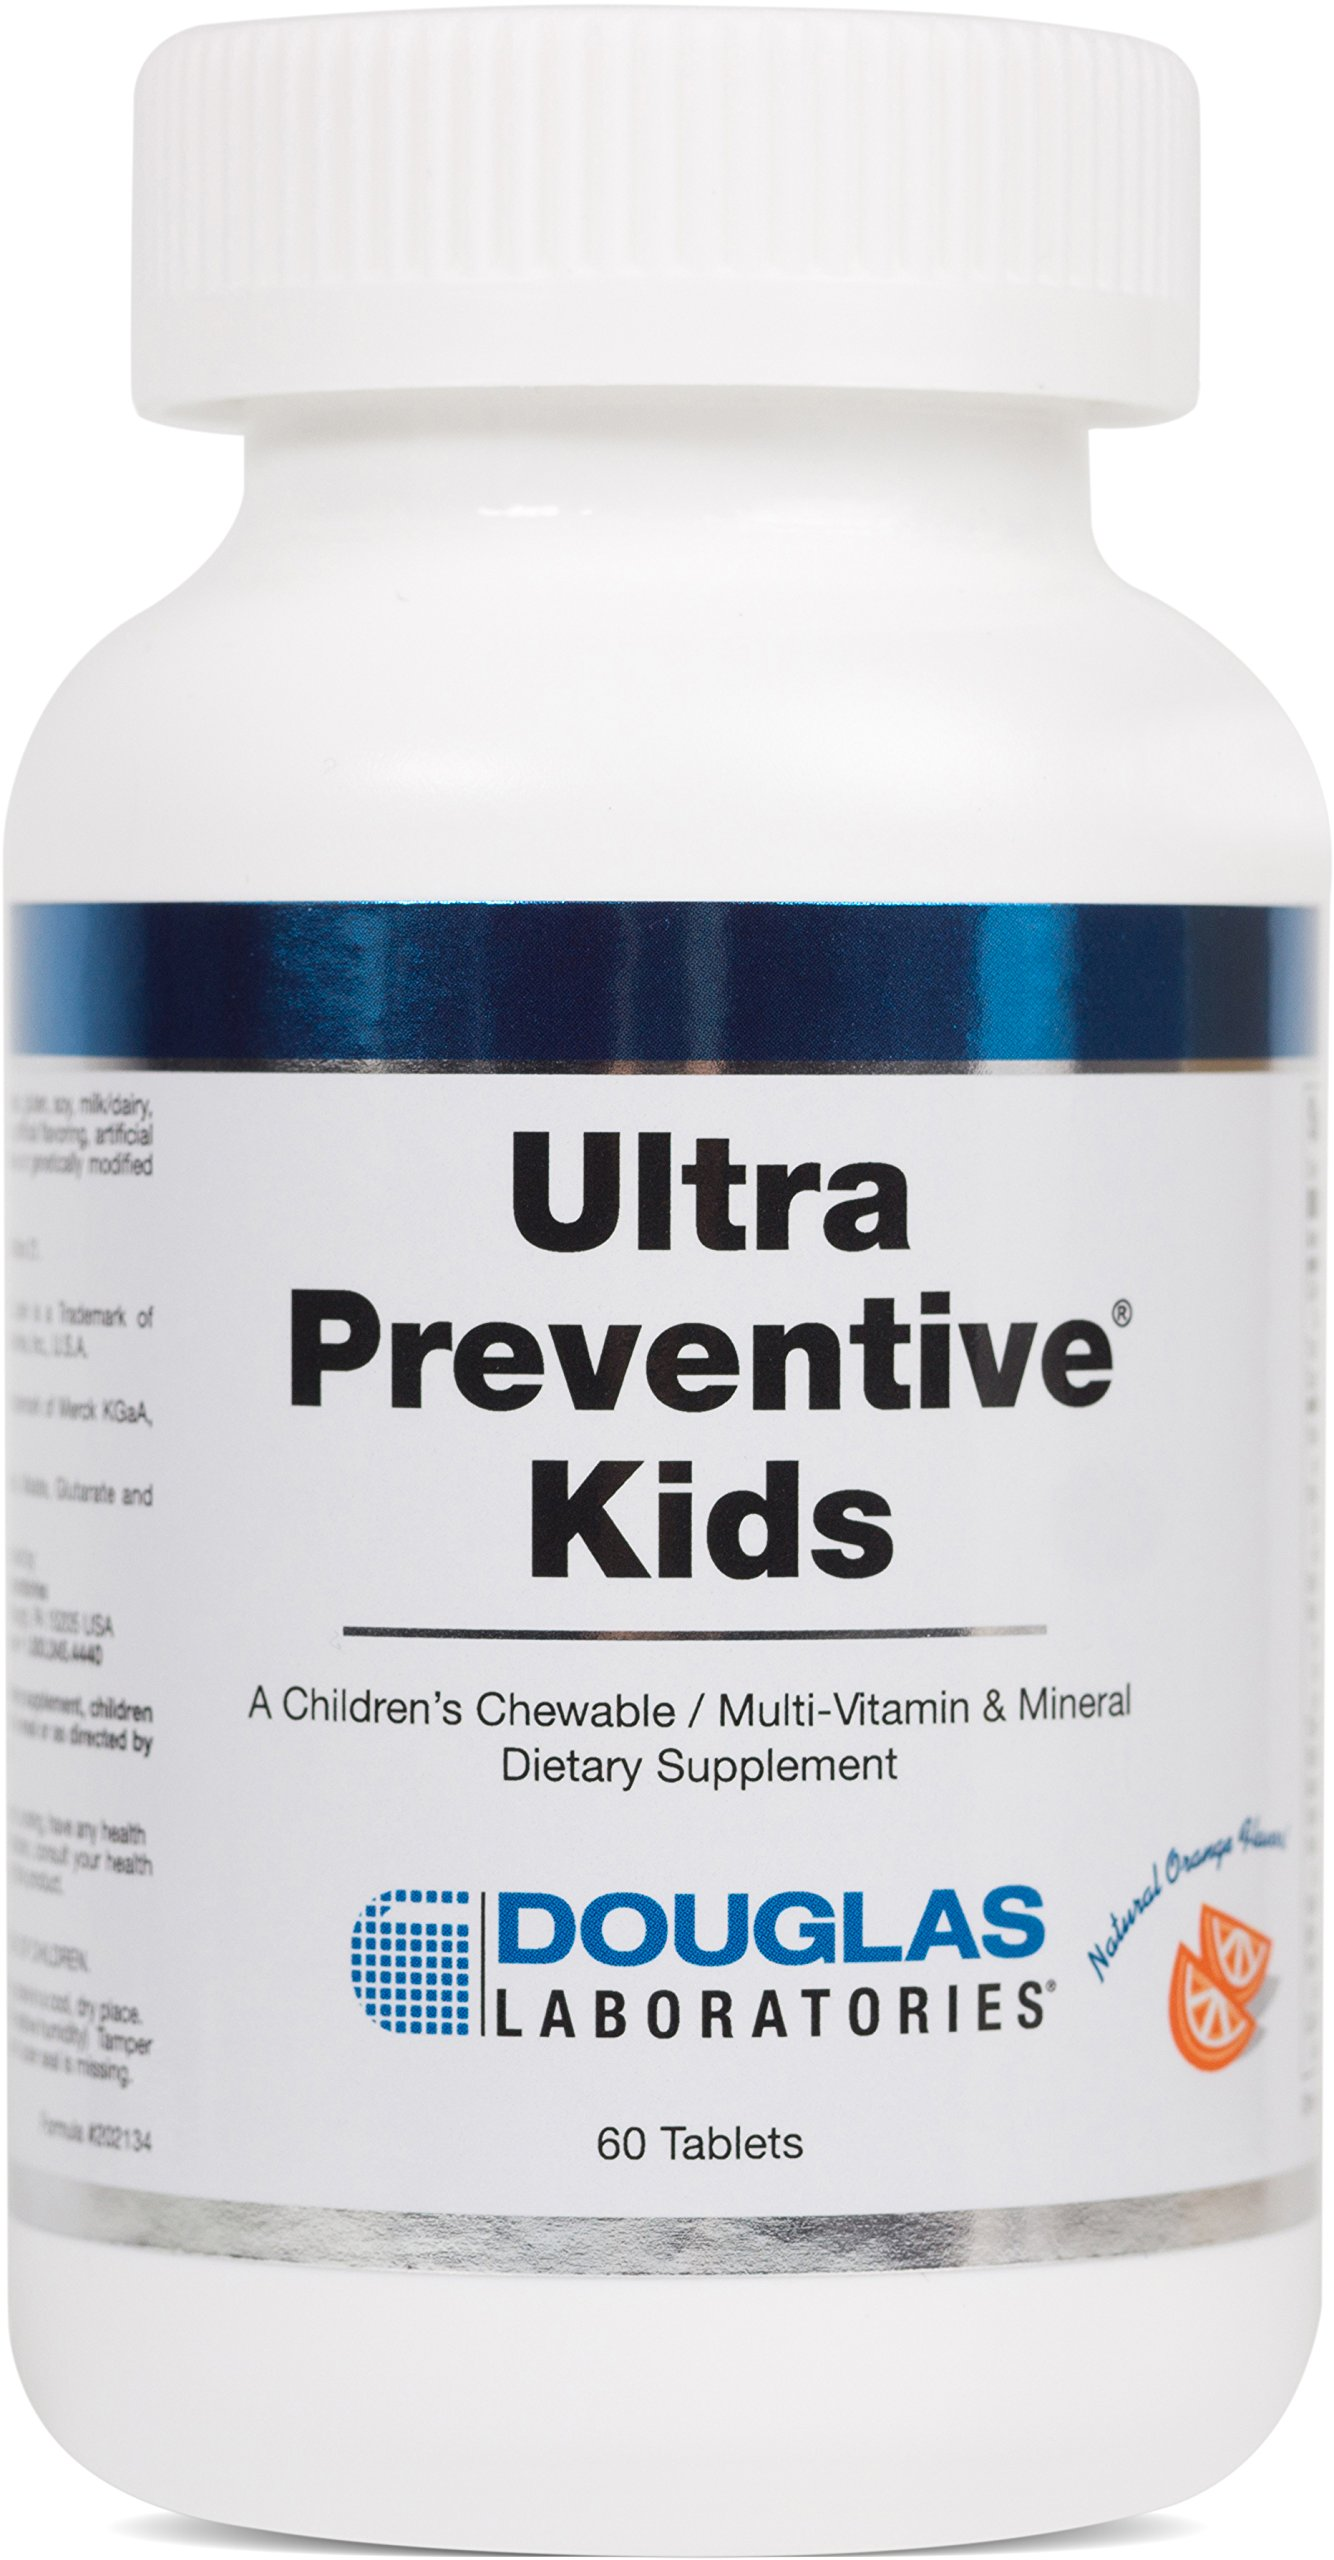 Douglas Laboratories® - Ultra Preventive Kids - Chewable Multivitamin / Mineral / Trace Element Supplement